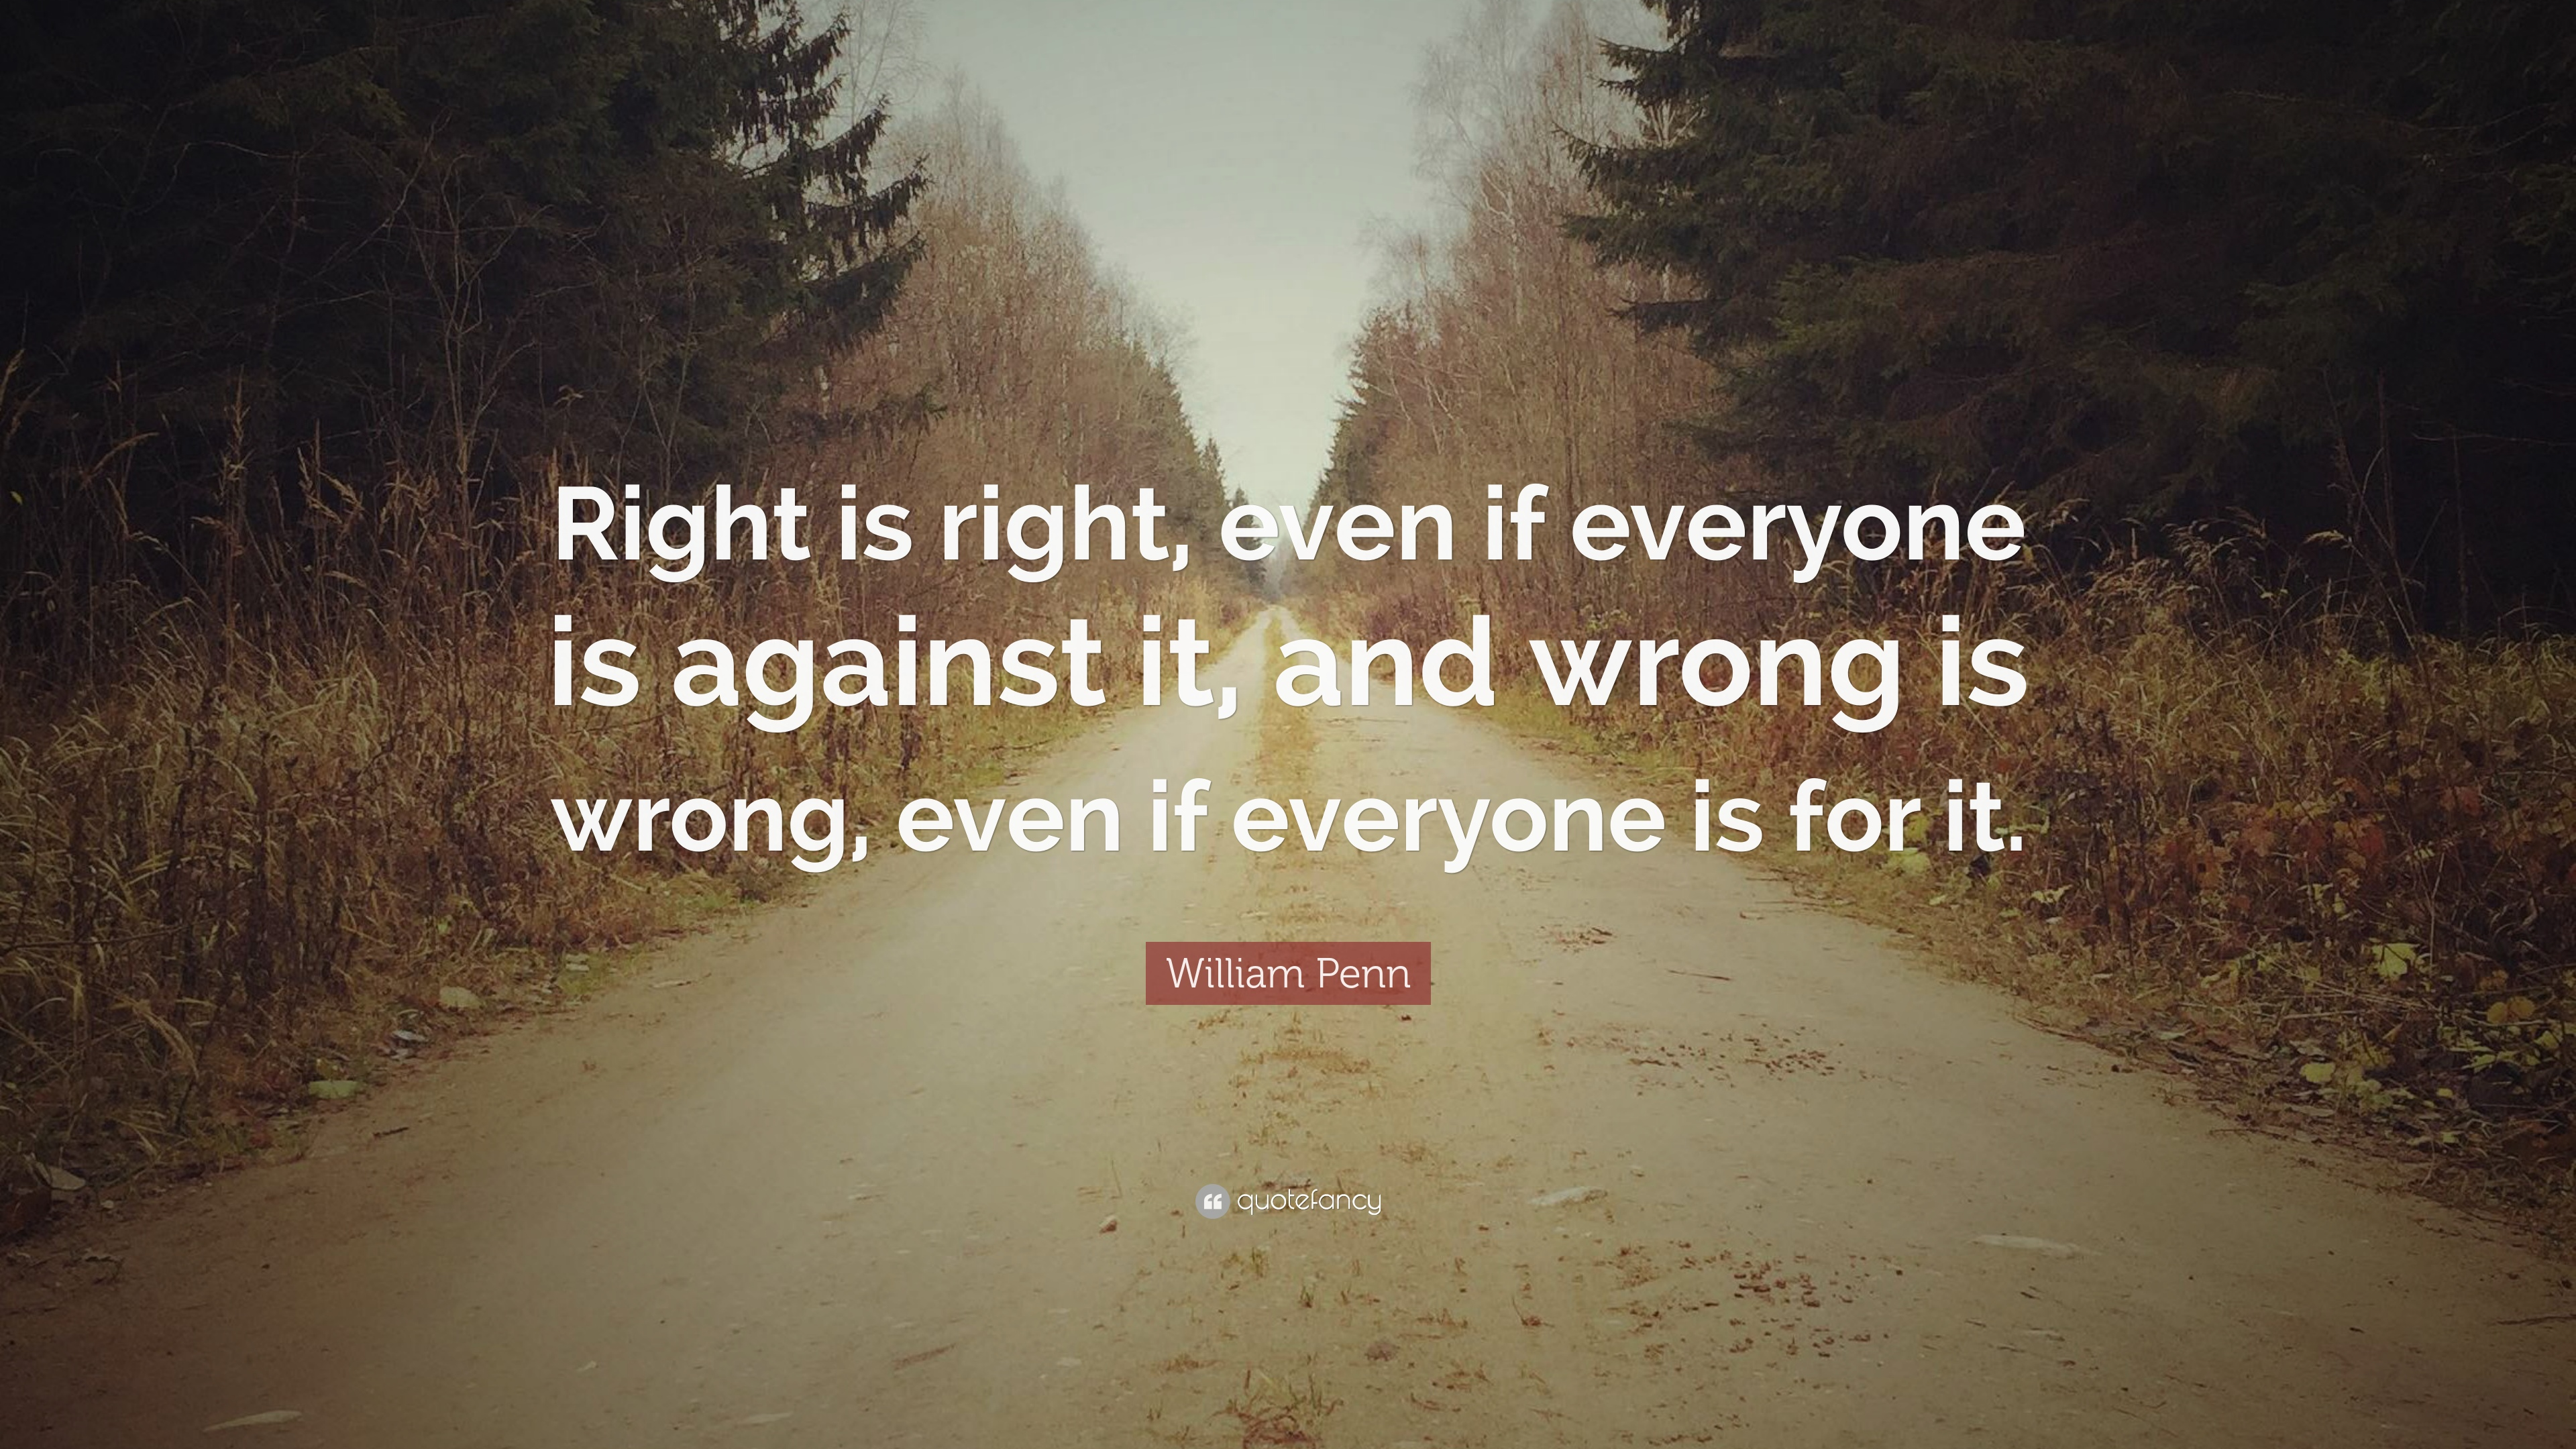 William Penn Quote: Right is right, even if everyone is